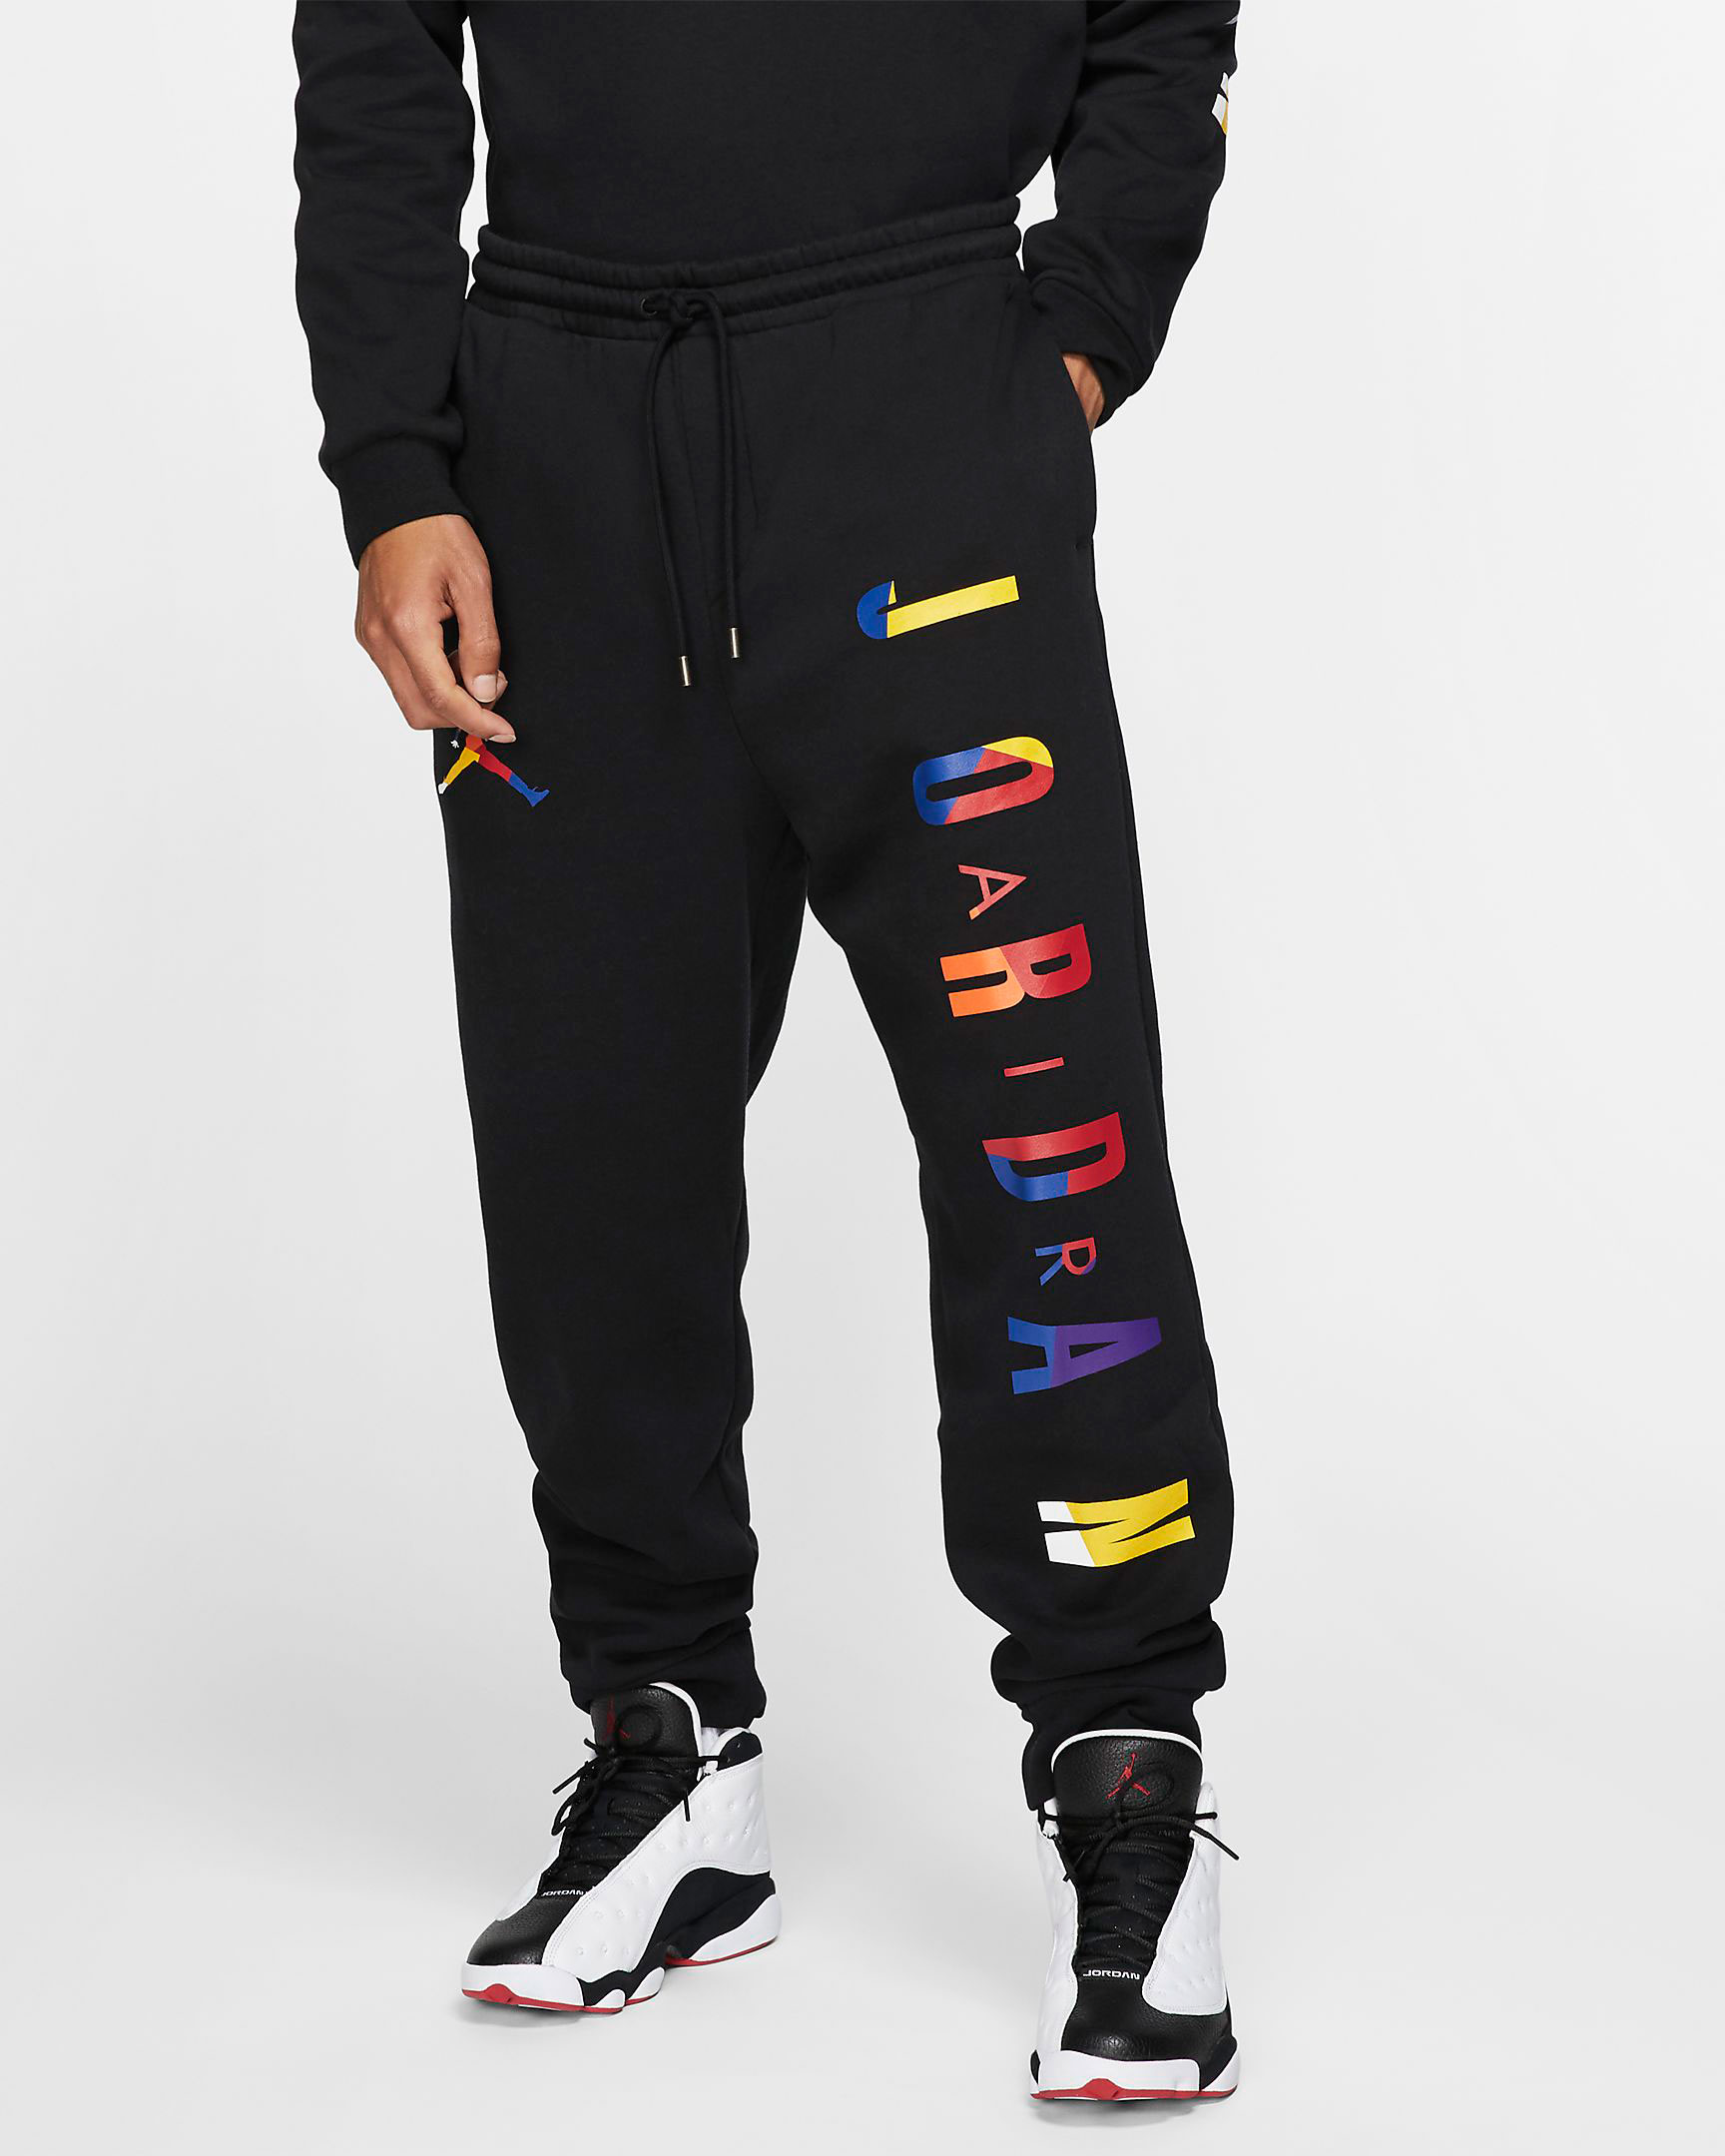 jordan-dna-jogger-pants-black